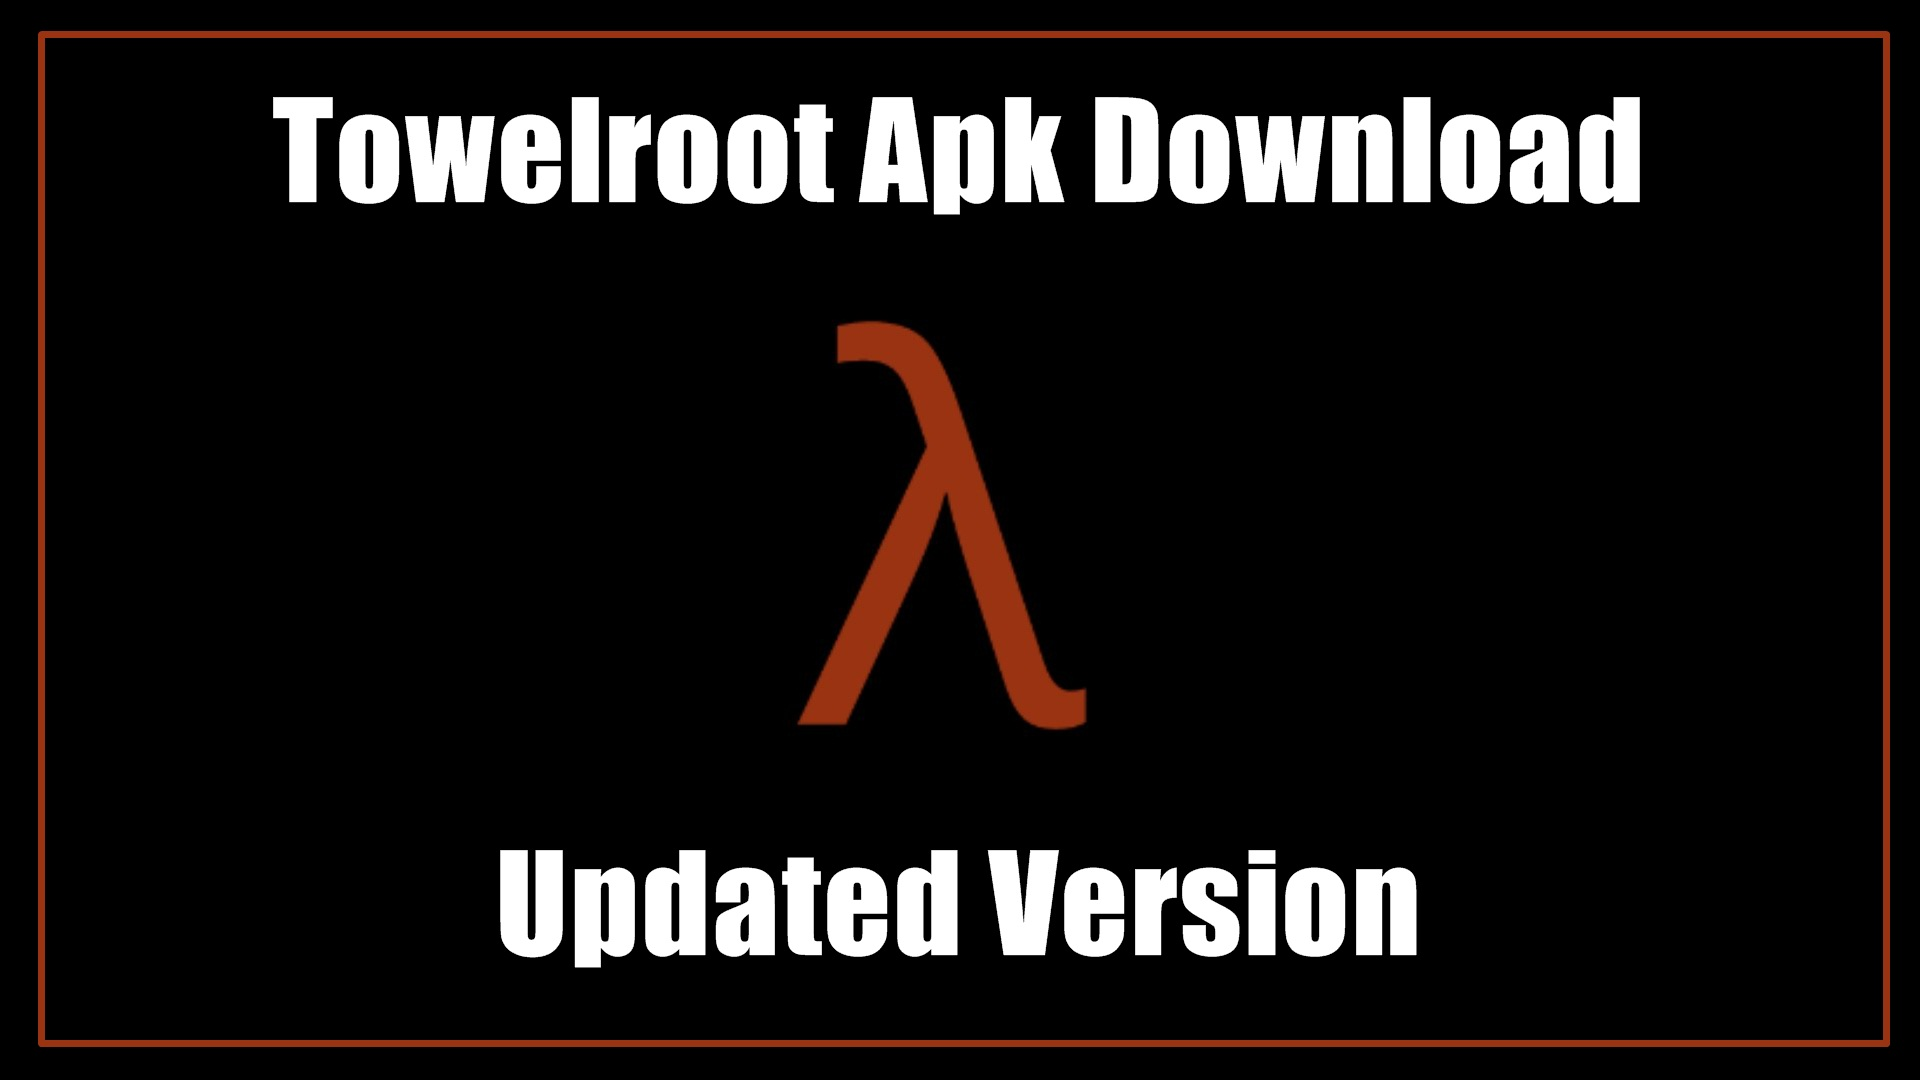 Towelroot Apk Download for Android - [ Updated Version ]